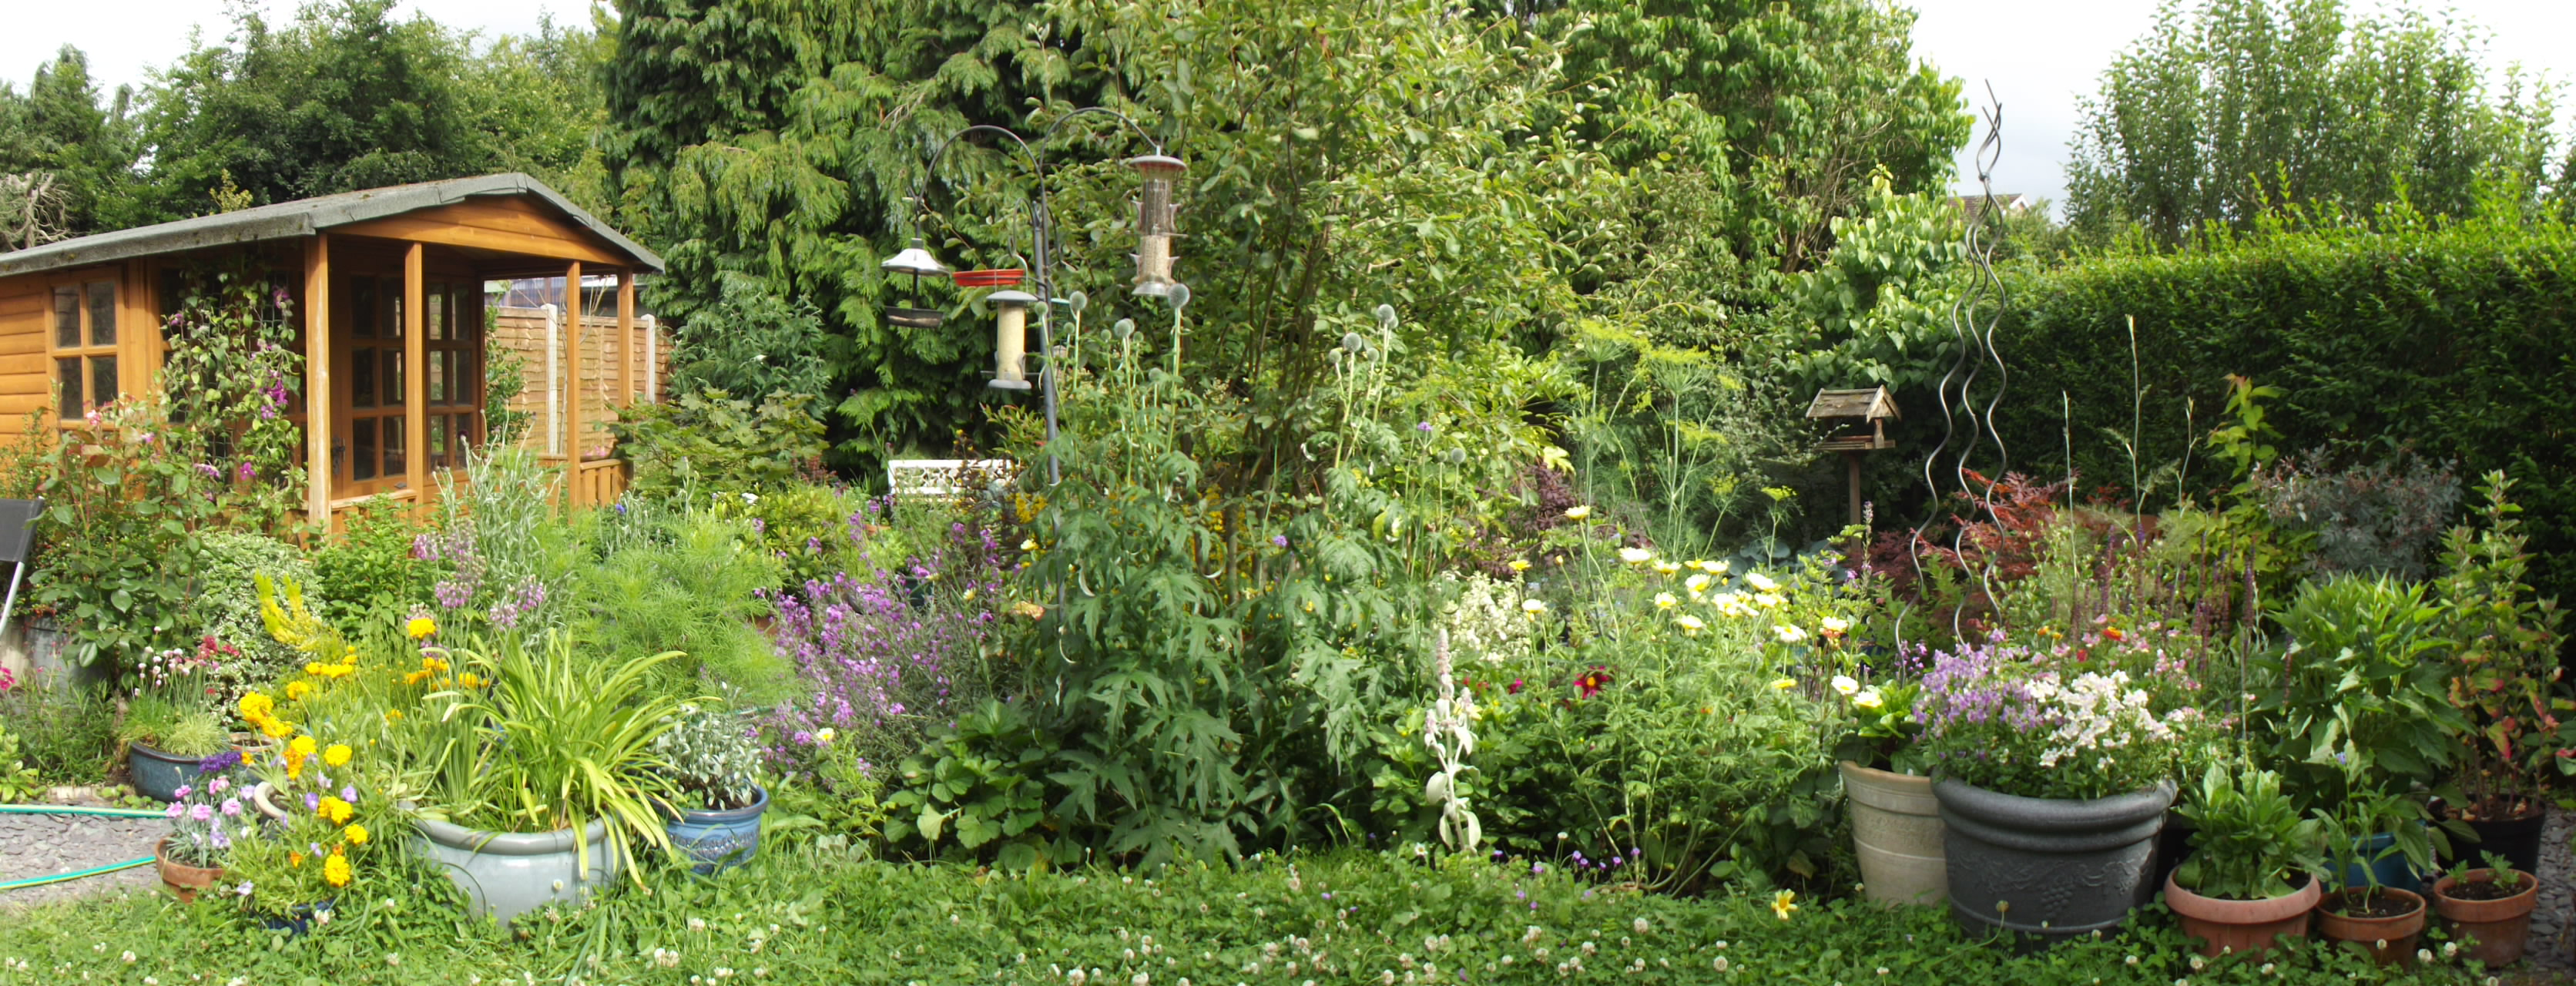 Open Food Gardens – Sustainable St Albans